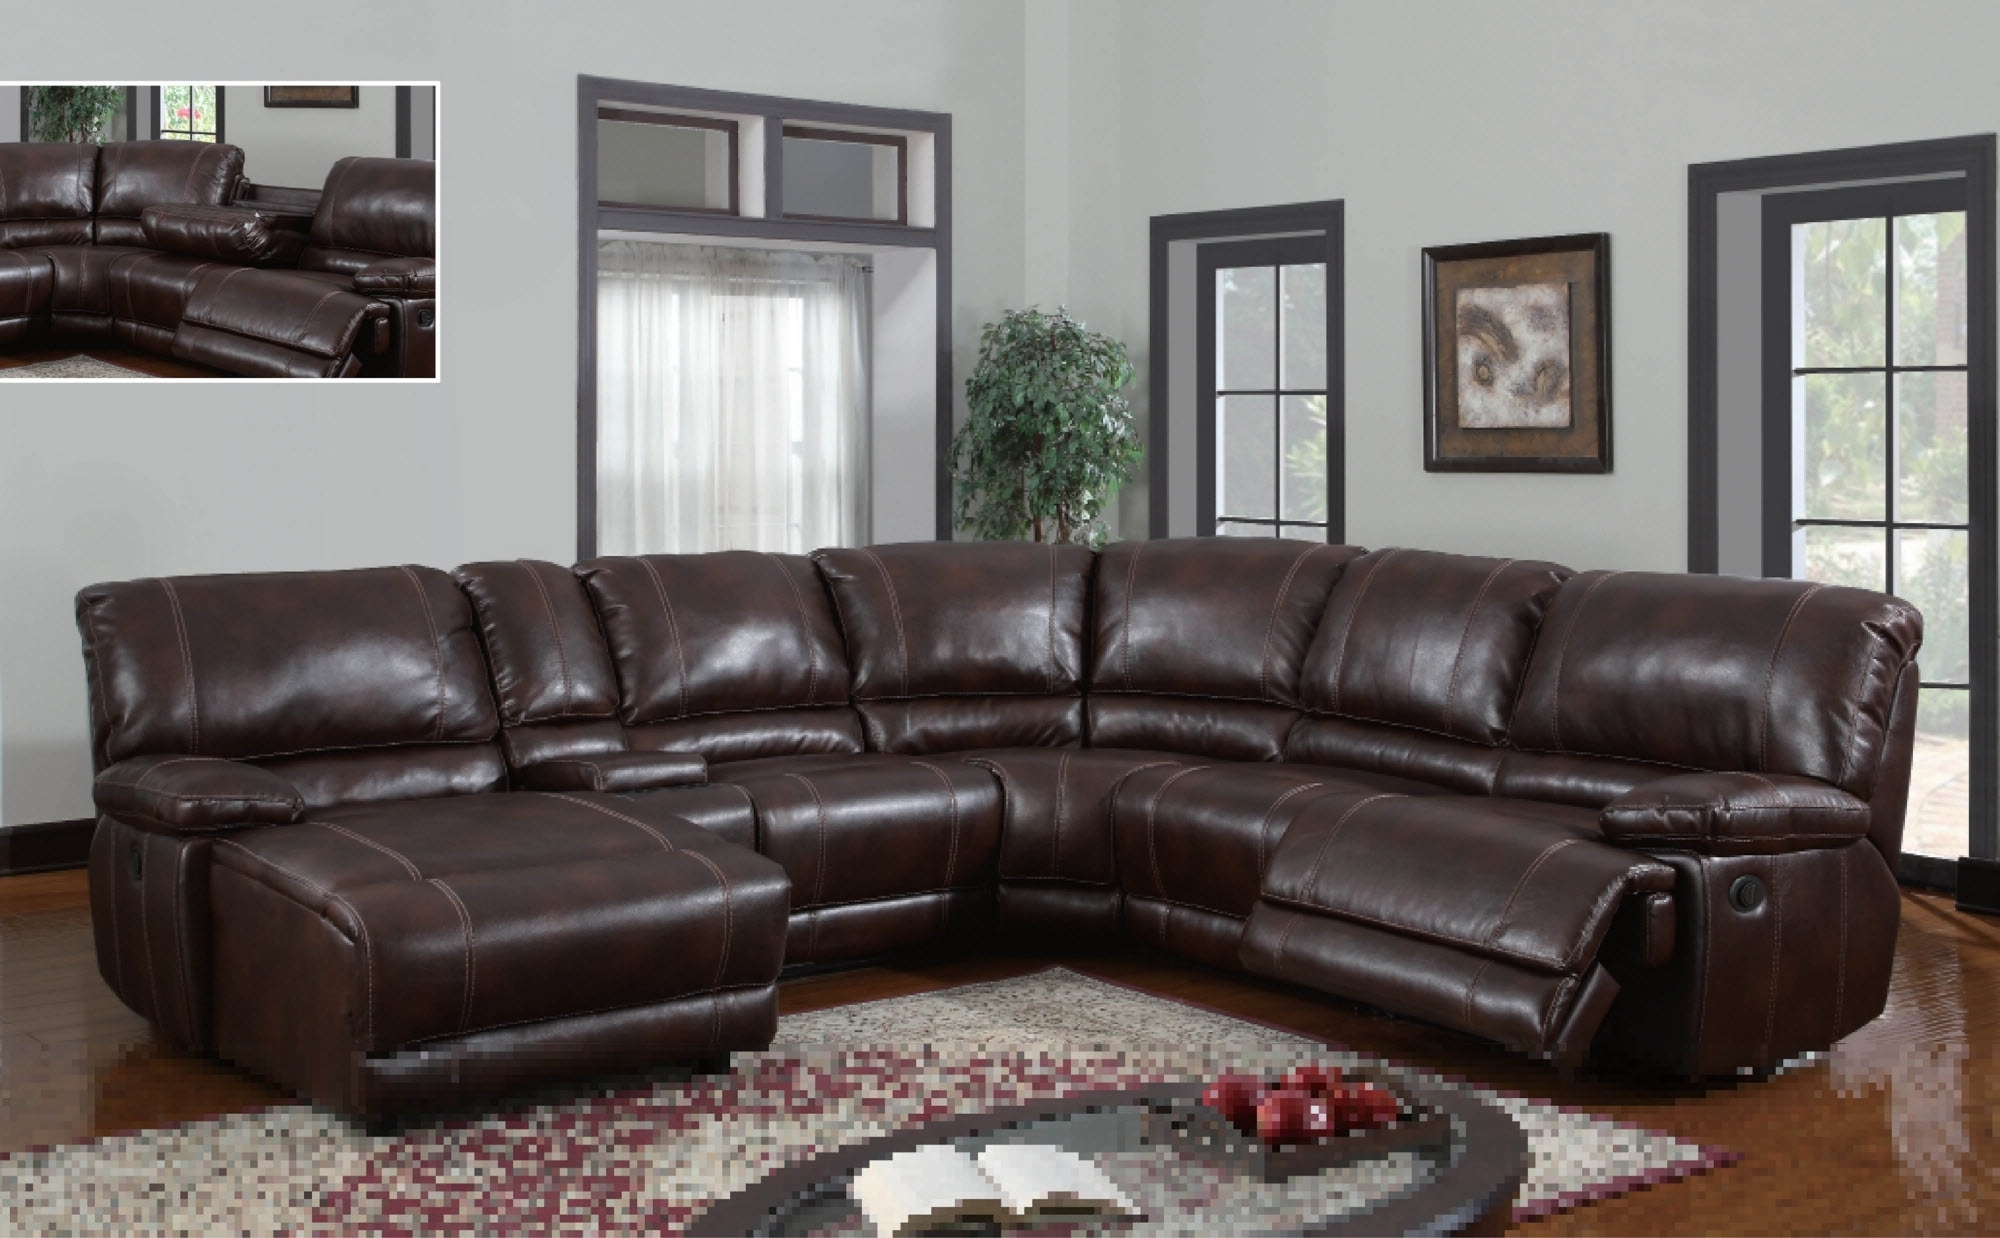 2019 Collection Sectional Sofas Rochester Ny – Mediasupload With Regard To Rochester Ny Sectional Sofas (View 3 of 20)